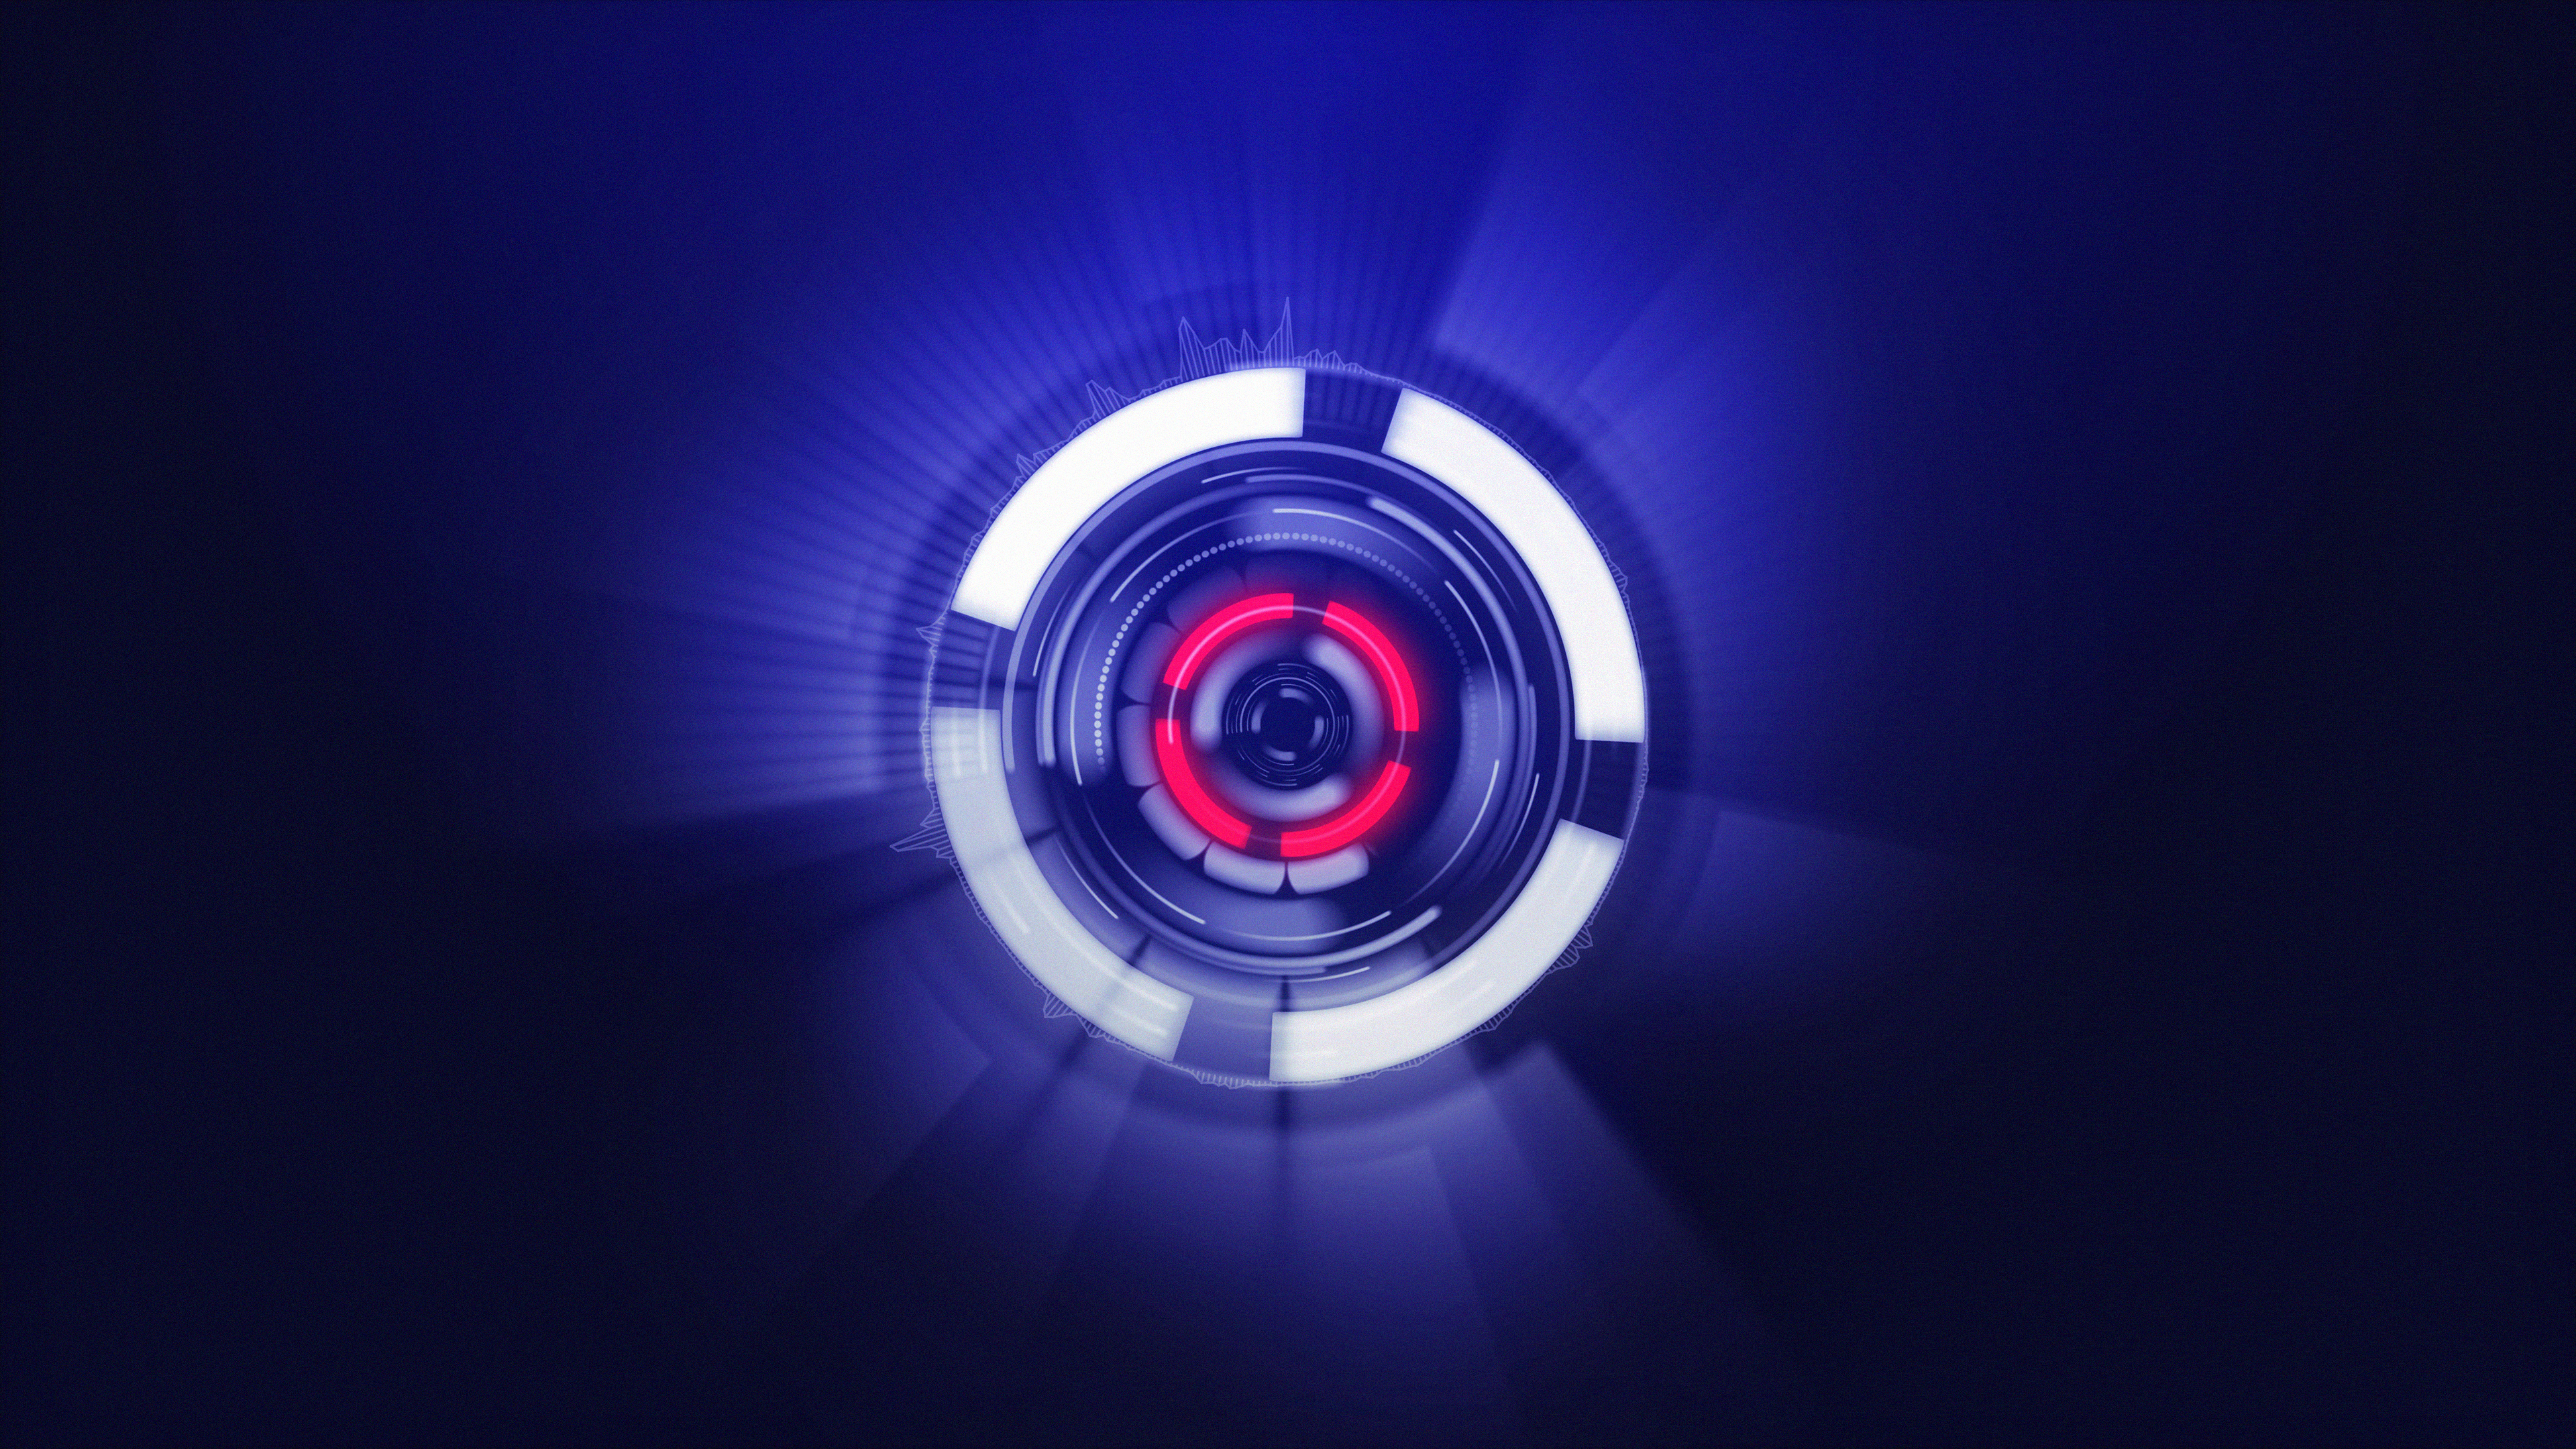 Neon Sphere Red Blue Purple 4k Hd Abstract 4k Wallpapers